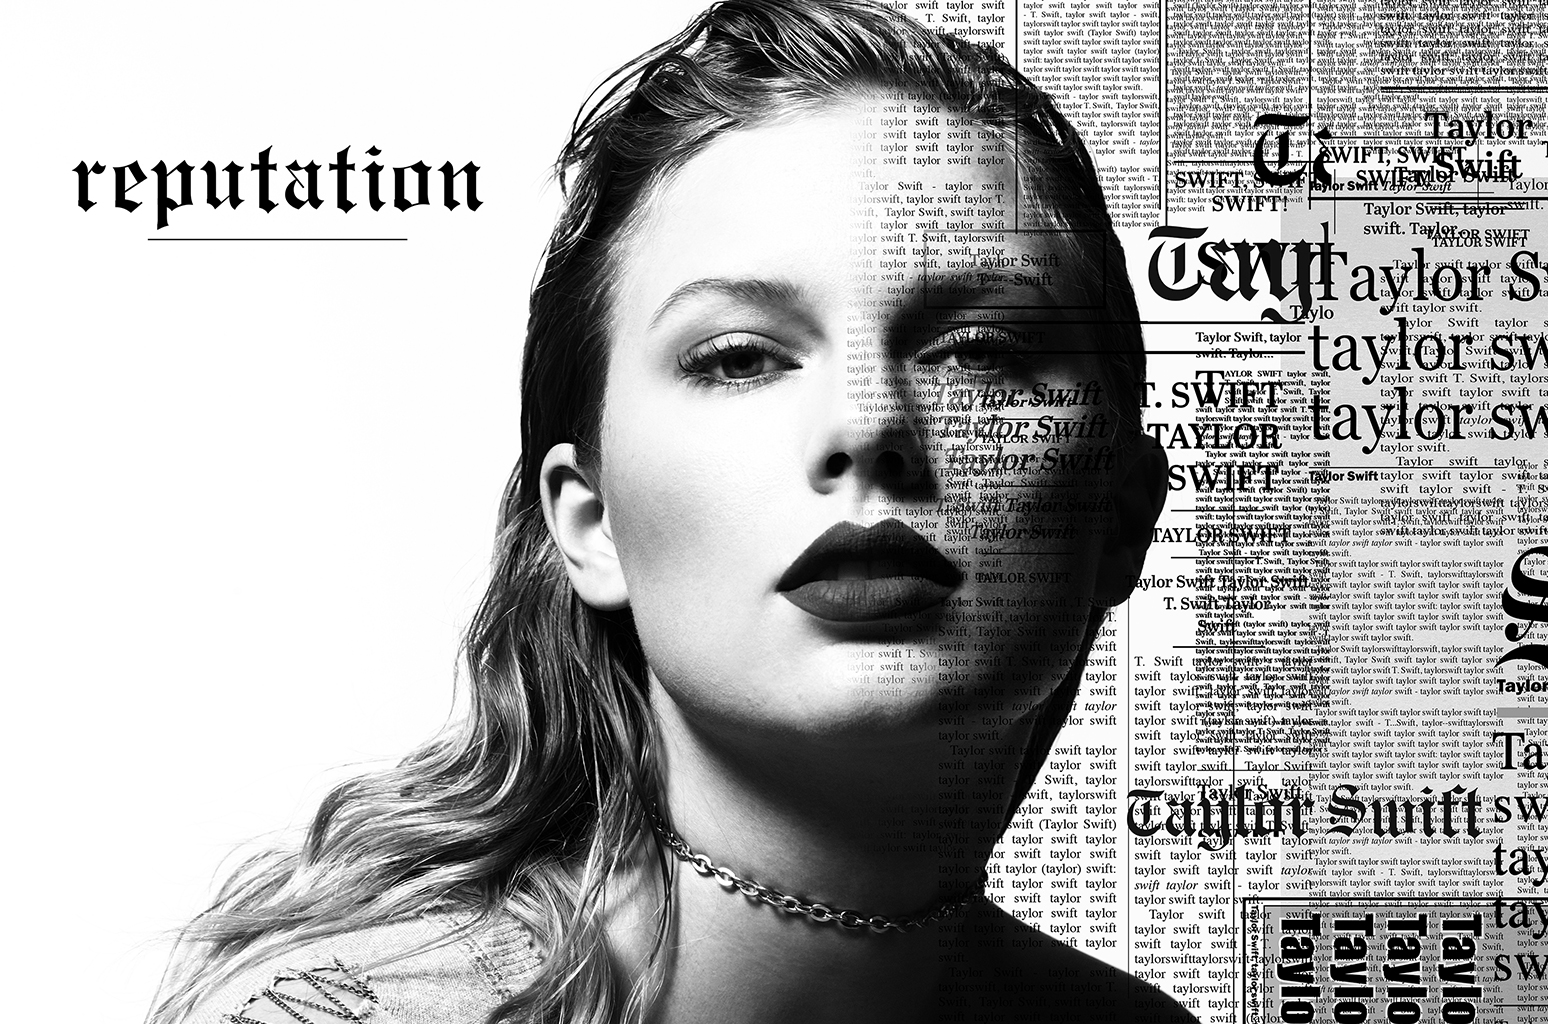 Taylor-Swift-reputation-ART-2017-billboard-1548